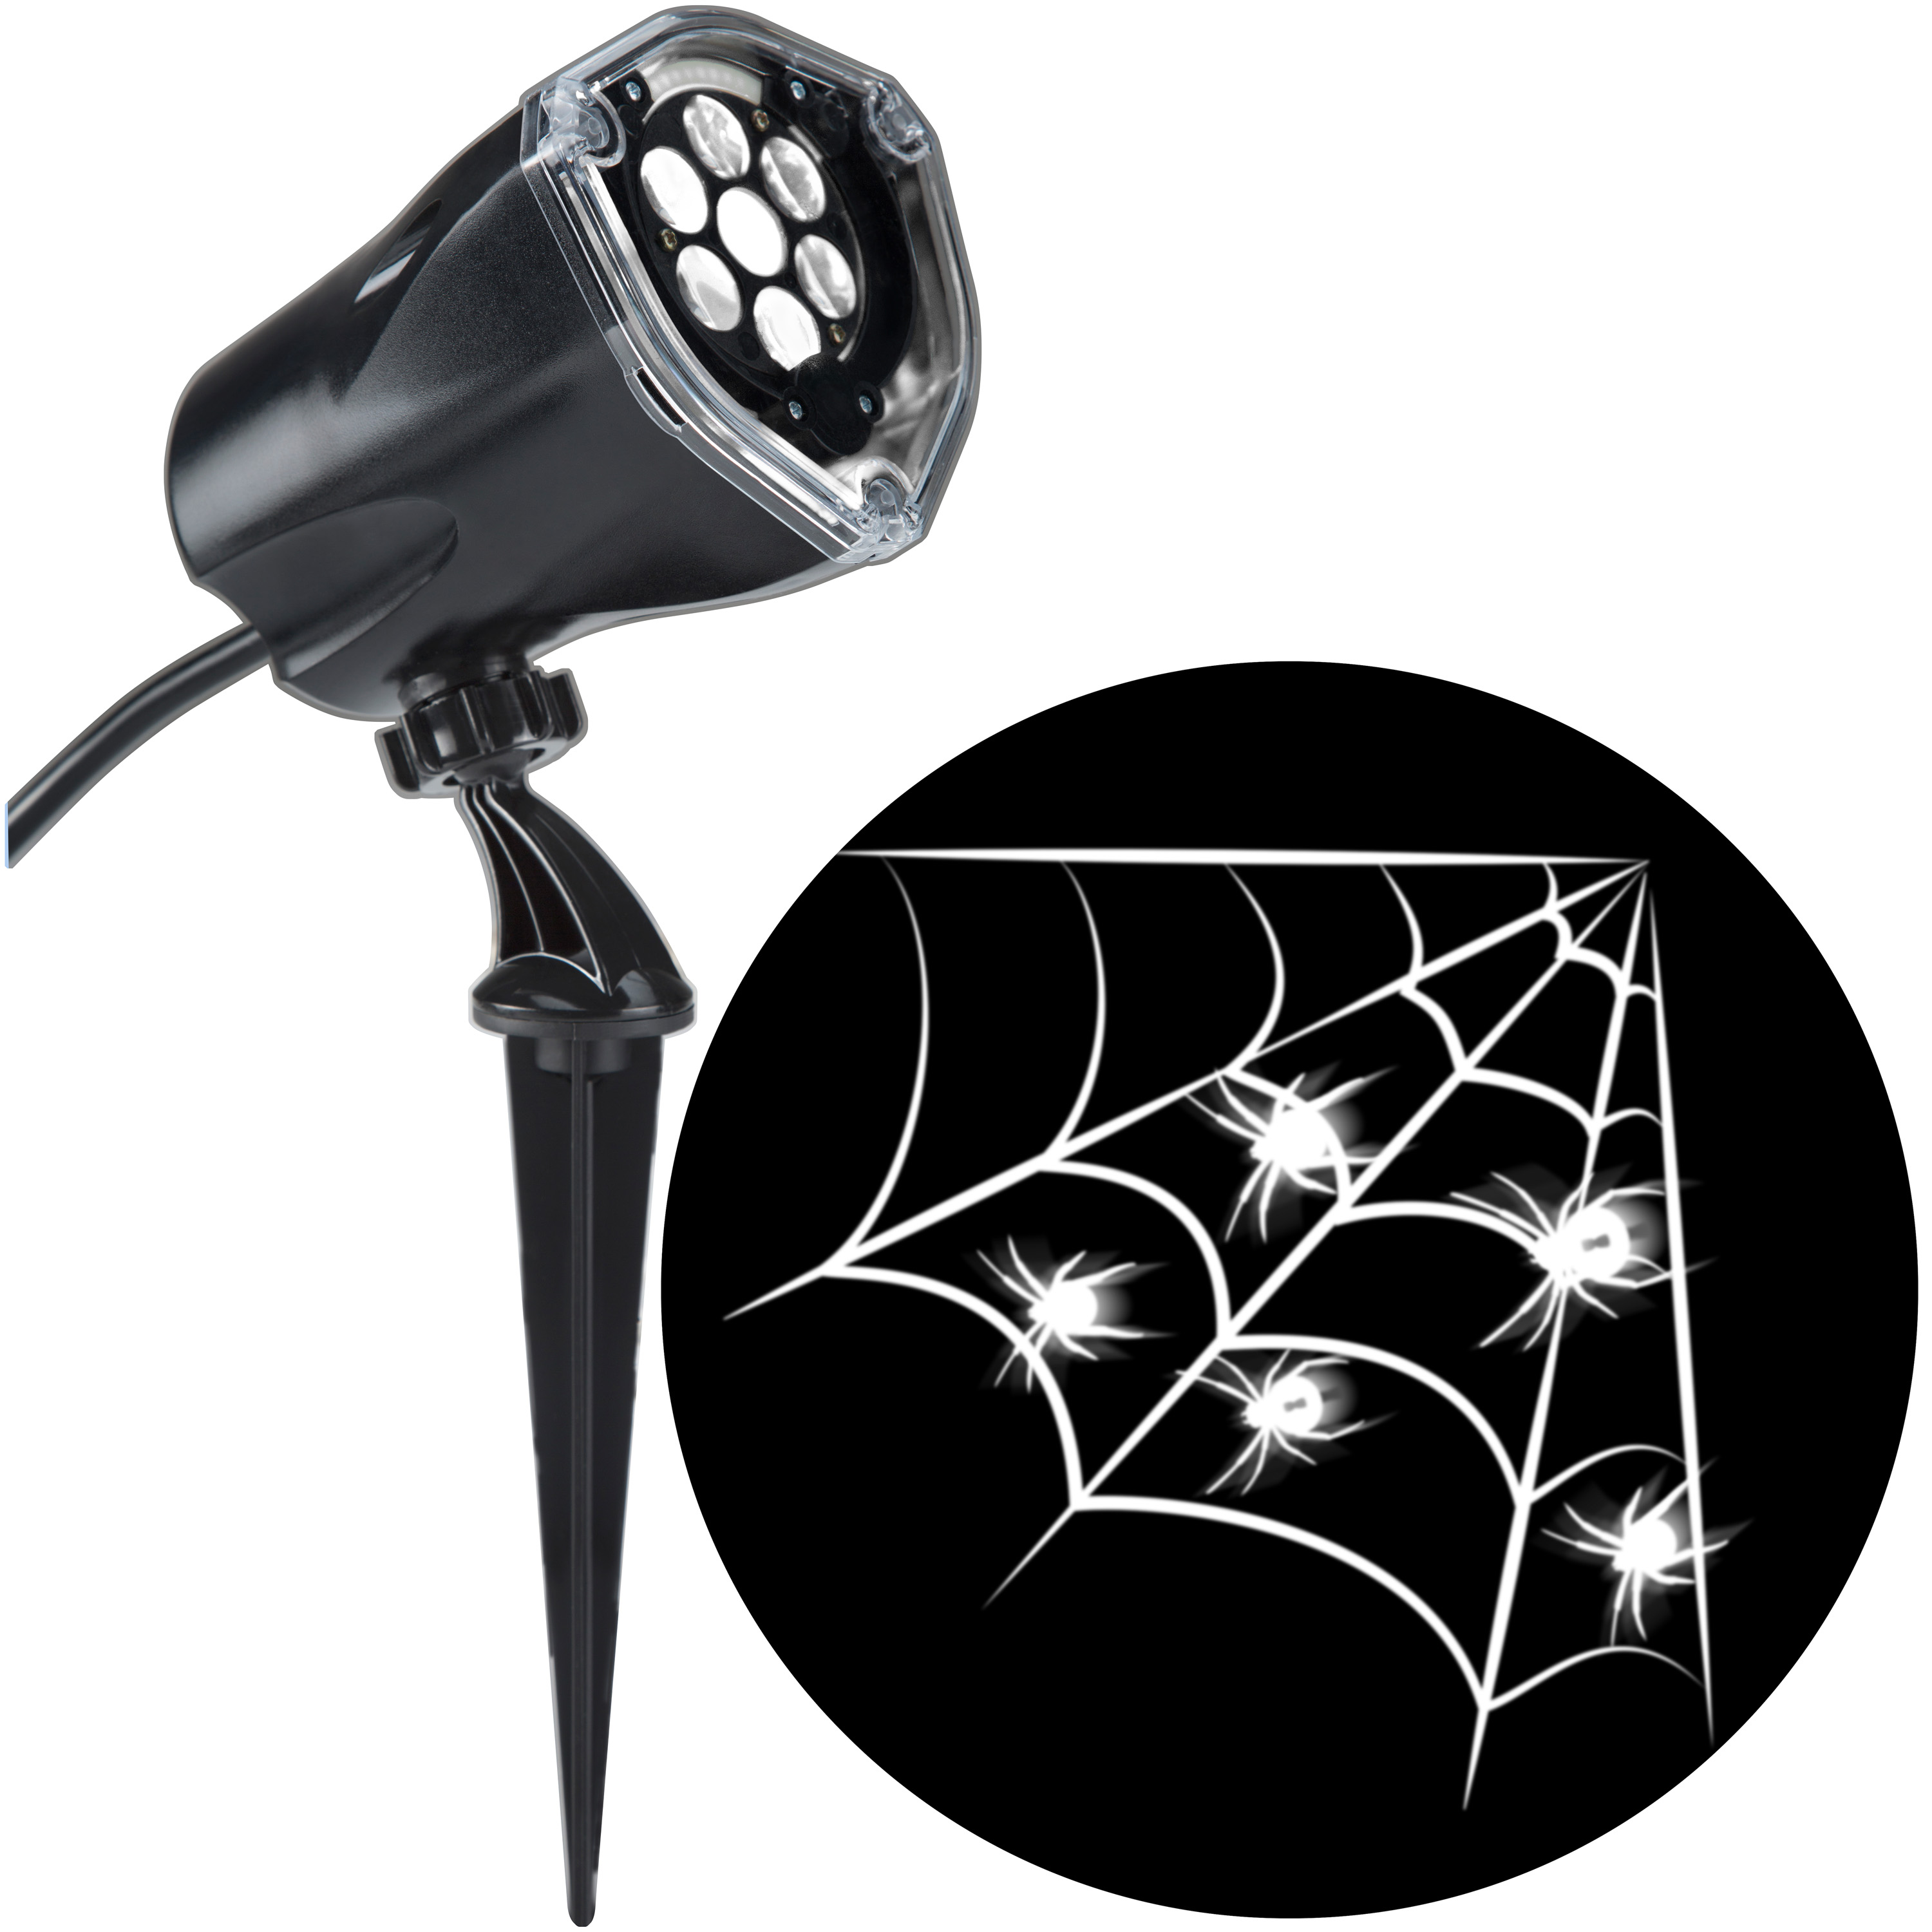 Halloween Lightshow Projection Plus-Whirl-a-Motion+Static-White Spider w/ Web (White) by Gemmy Industries